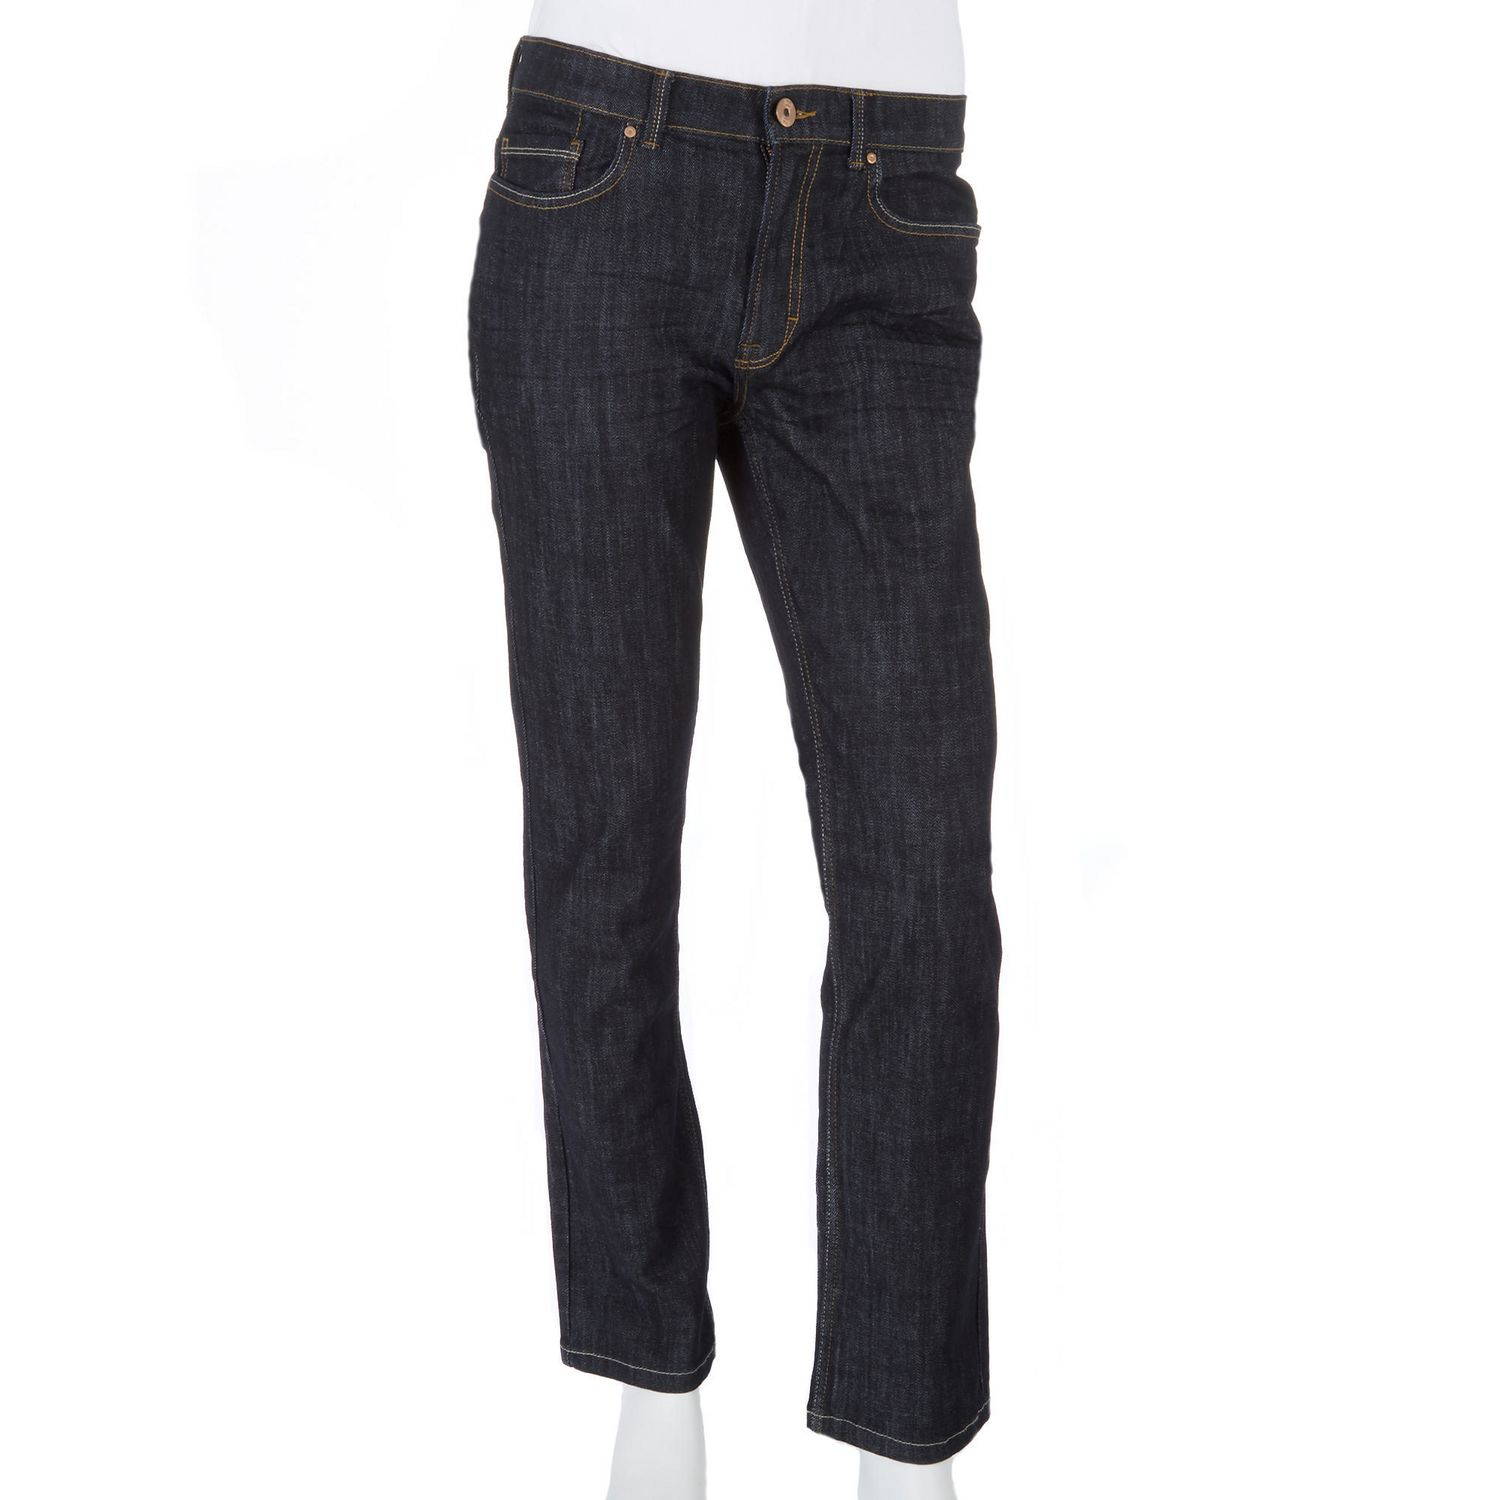 6a9e27a5b00 George Men s Slim Fit Jeans - image 1 of 1 zoomed image